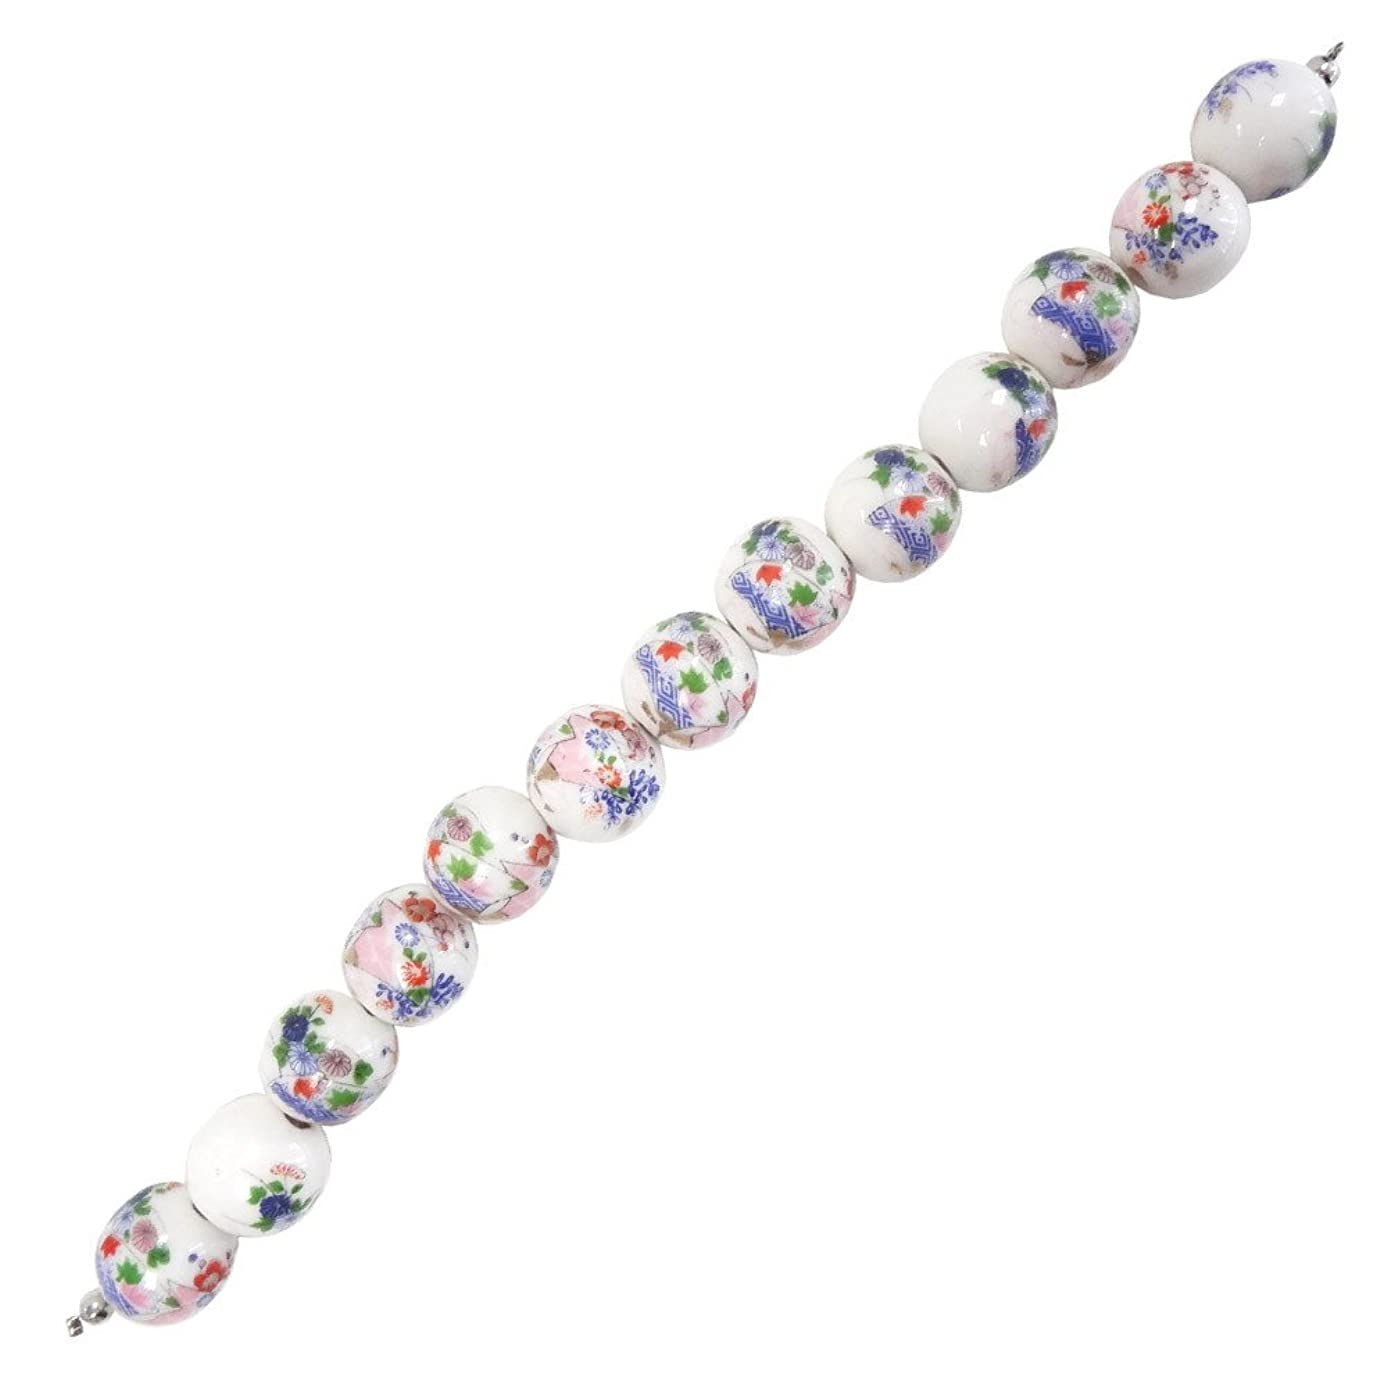 Fiona 100511-09 Series 7.5-Inch Porcelain Beads Strand, Japanese Style Flower Arrangement Printed on 14mm Round Porcelain Beads